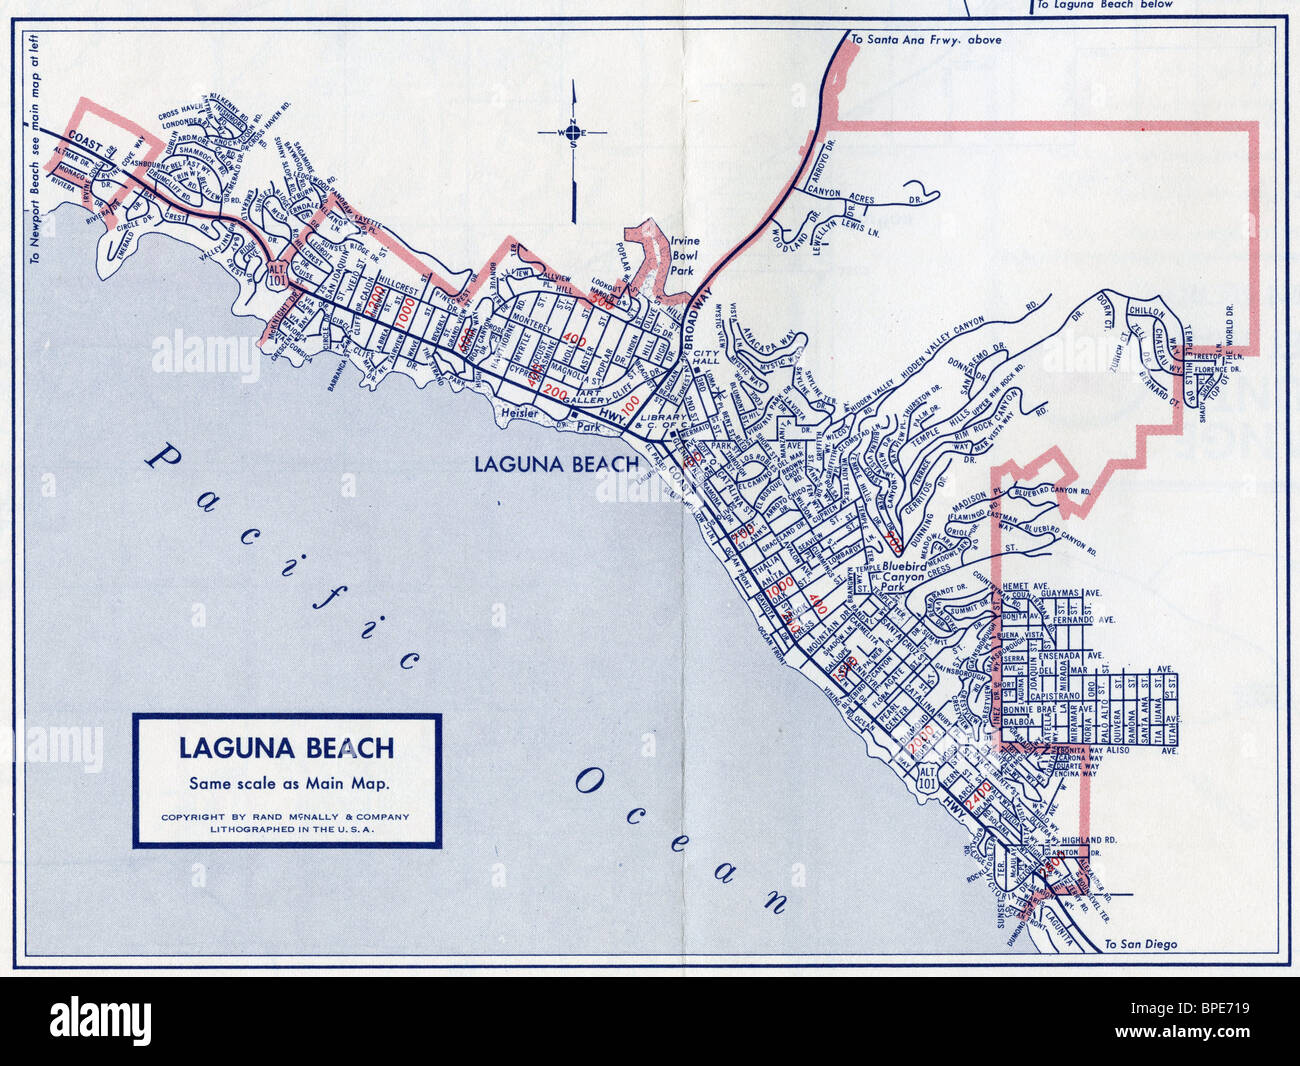 Old Map Of Laguna Beach Stock Photo Alamy - The old map company